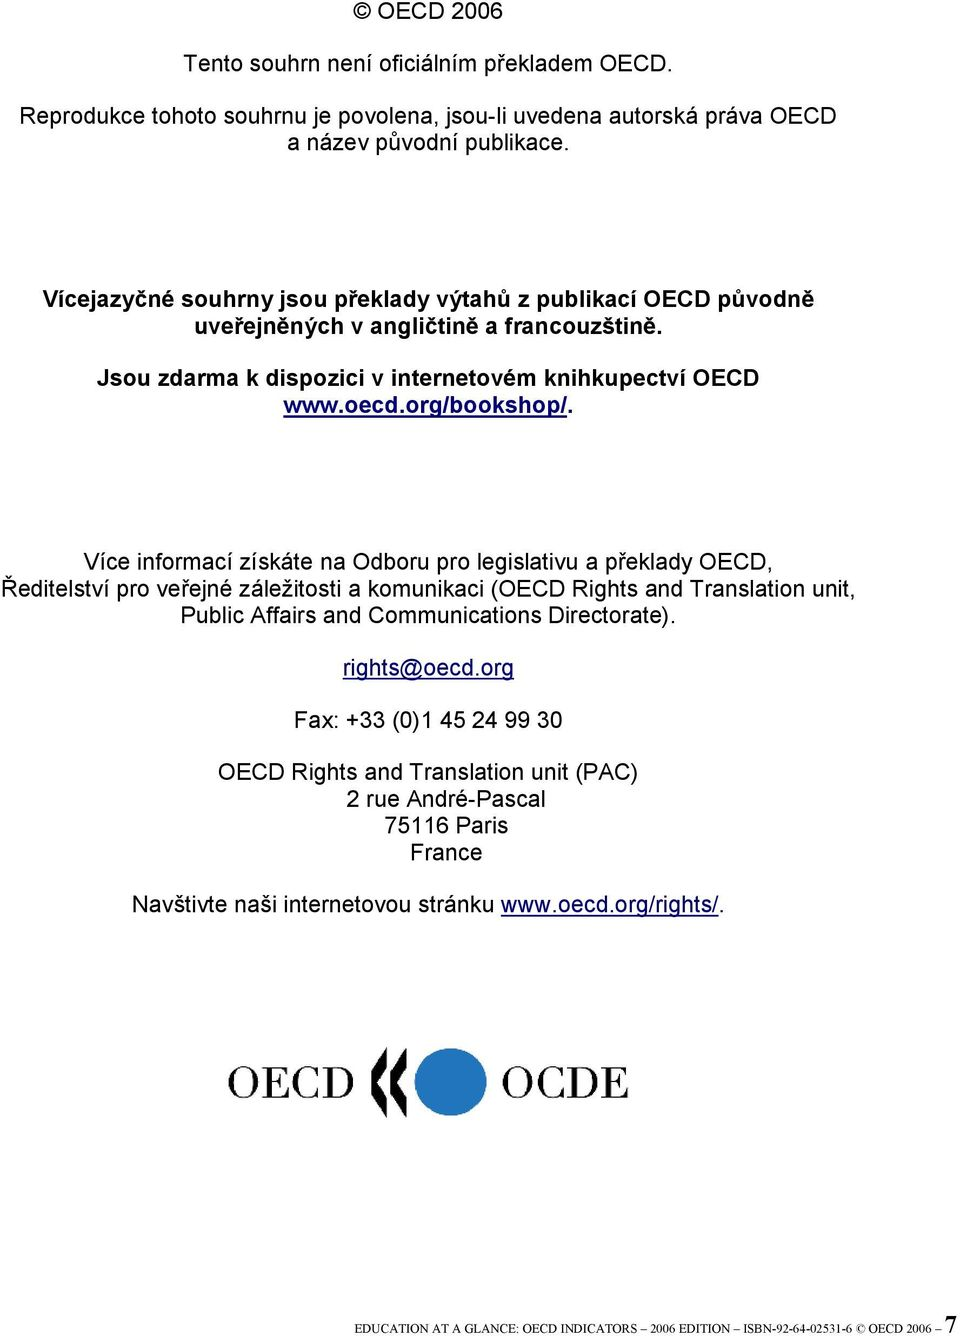 Více informací získáte na Odboru pro legislativu a překlady OECD, Ředitelství pro veřejné záležitosti a komunikaci (OECD Rights and Translation unit, Public Affairs and Communications Directorate).